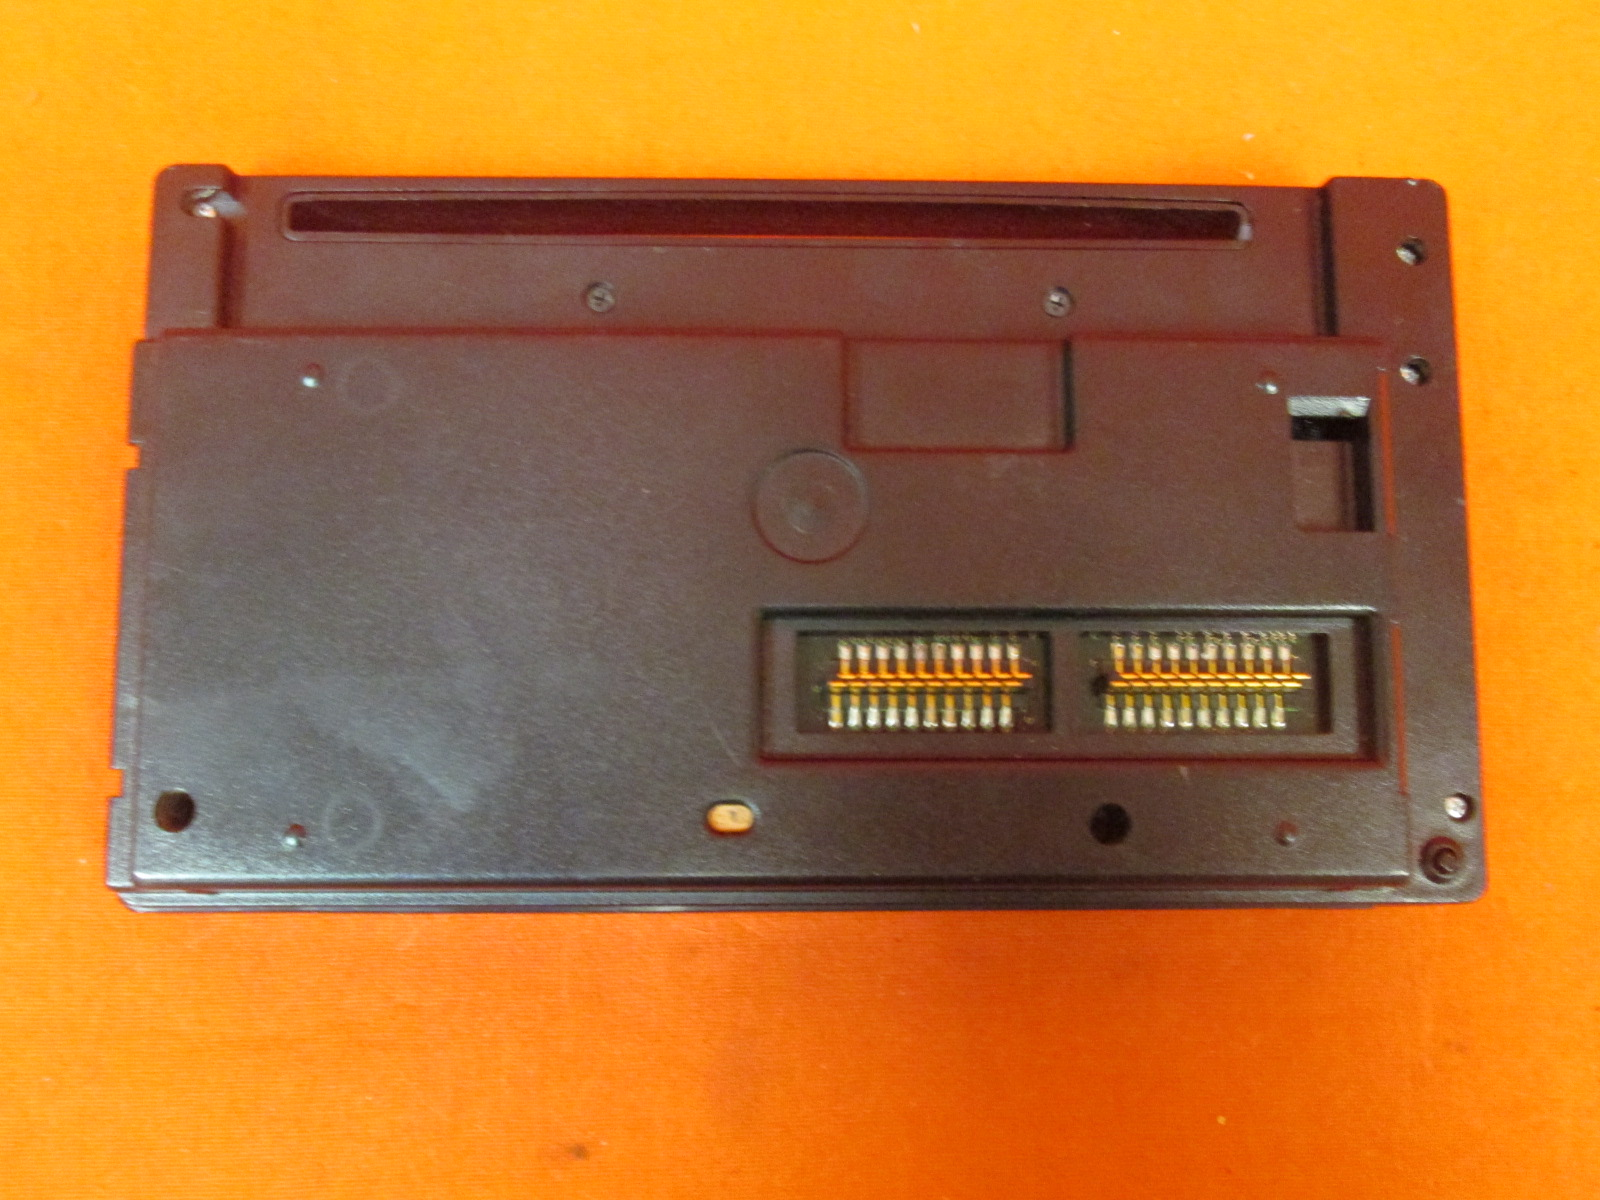 Image 1 of Replacement Faceplate For JVC Arsenal KW-ADV794 DVD Receiver